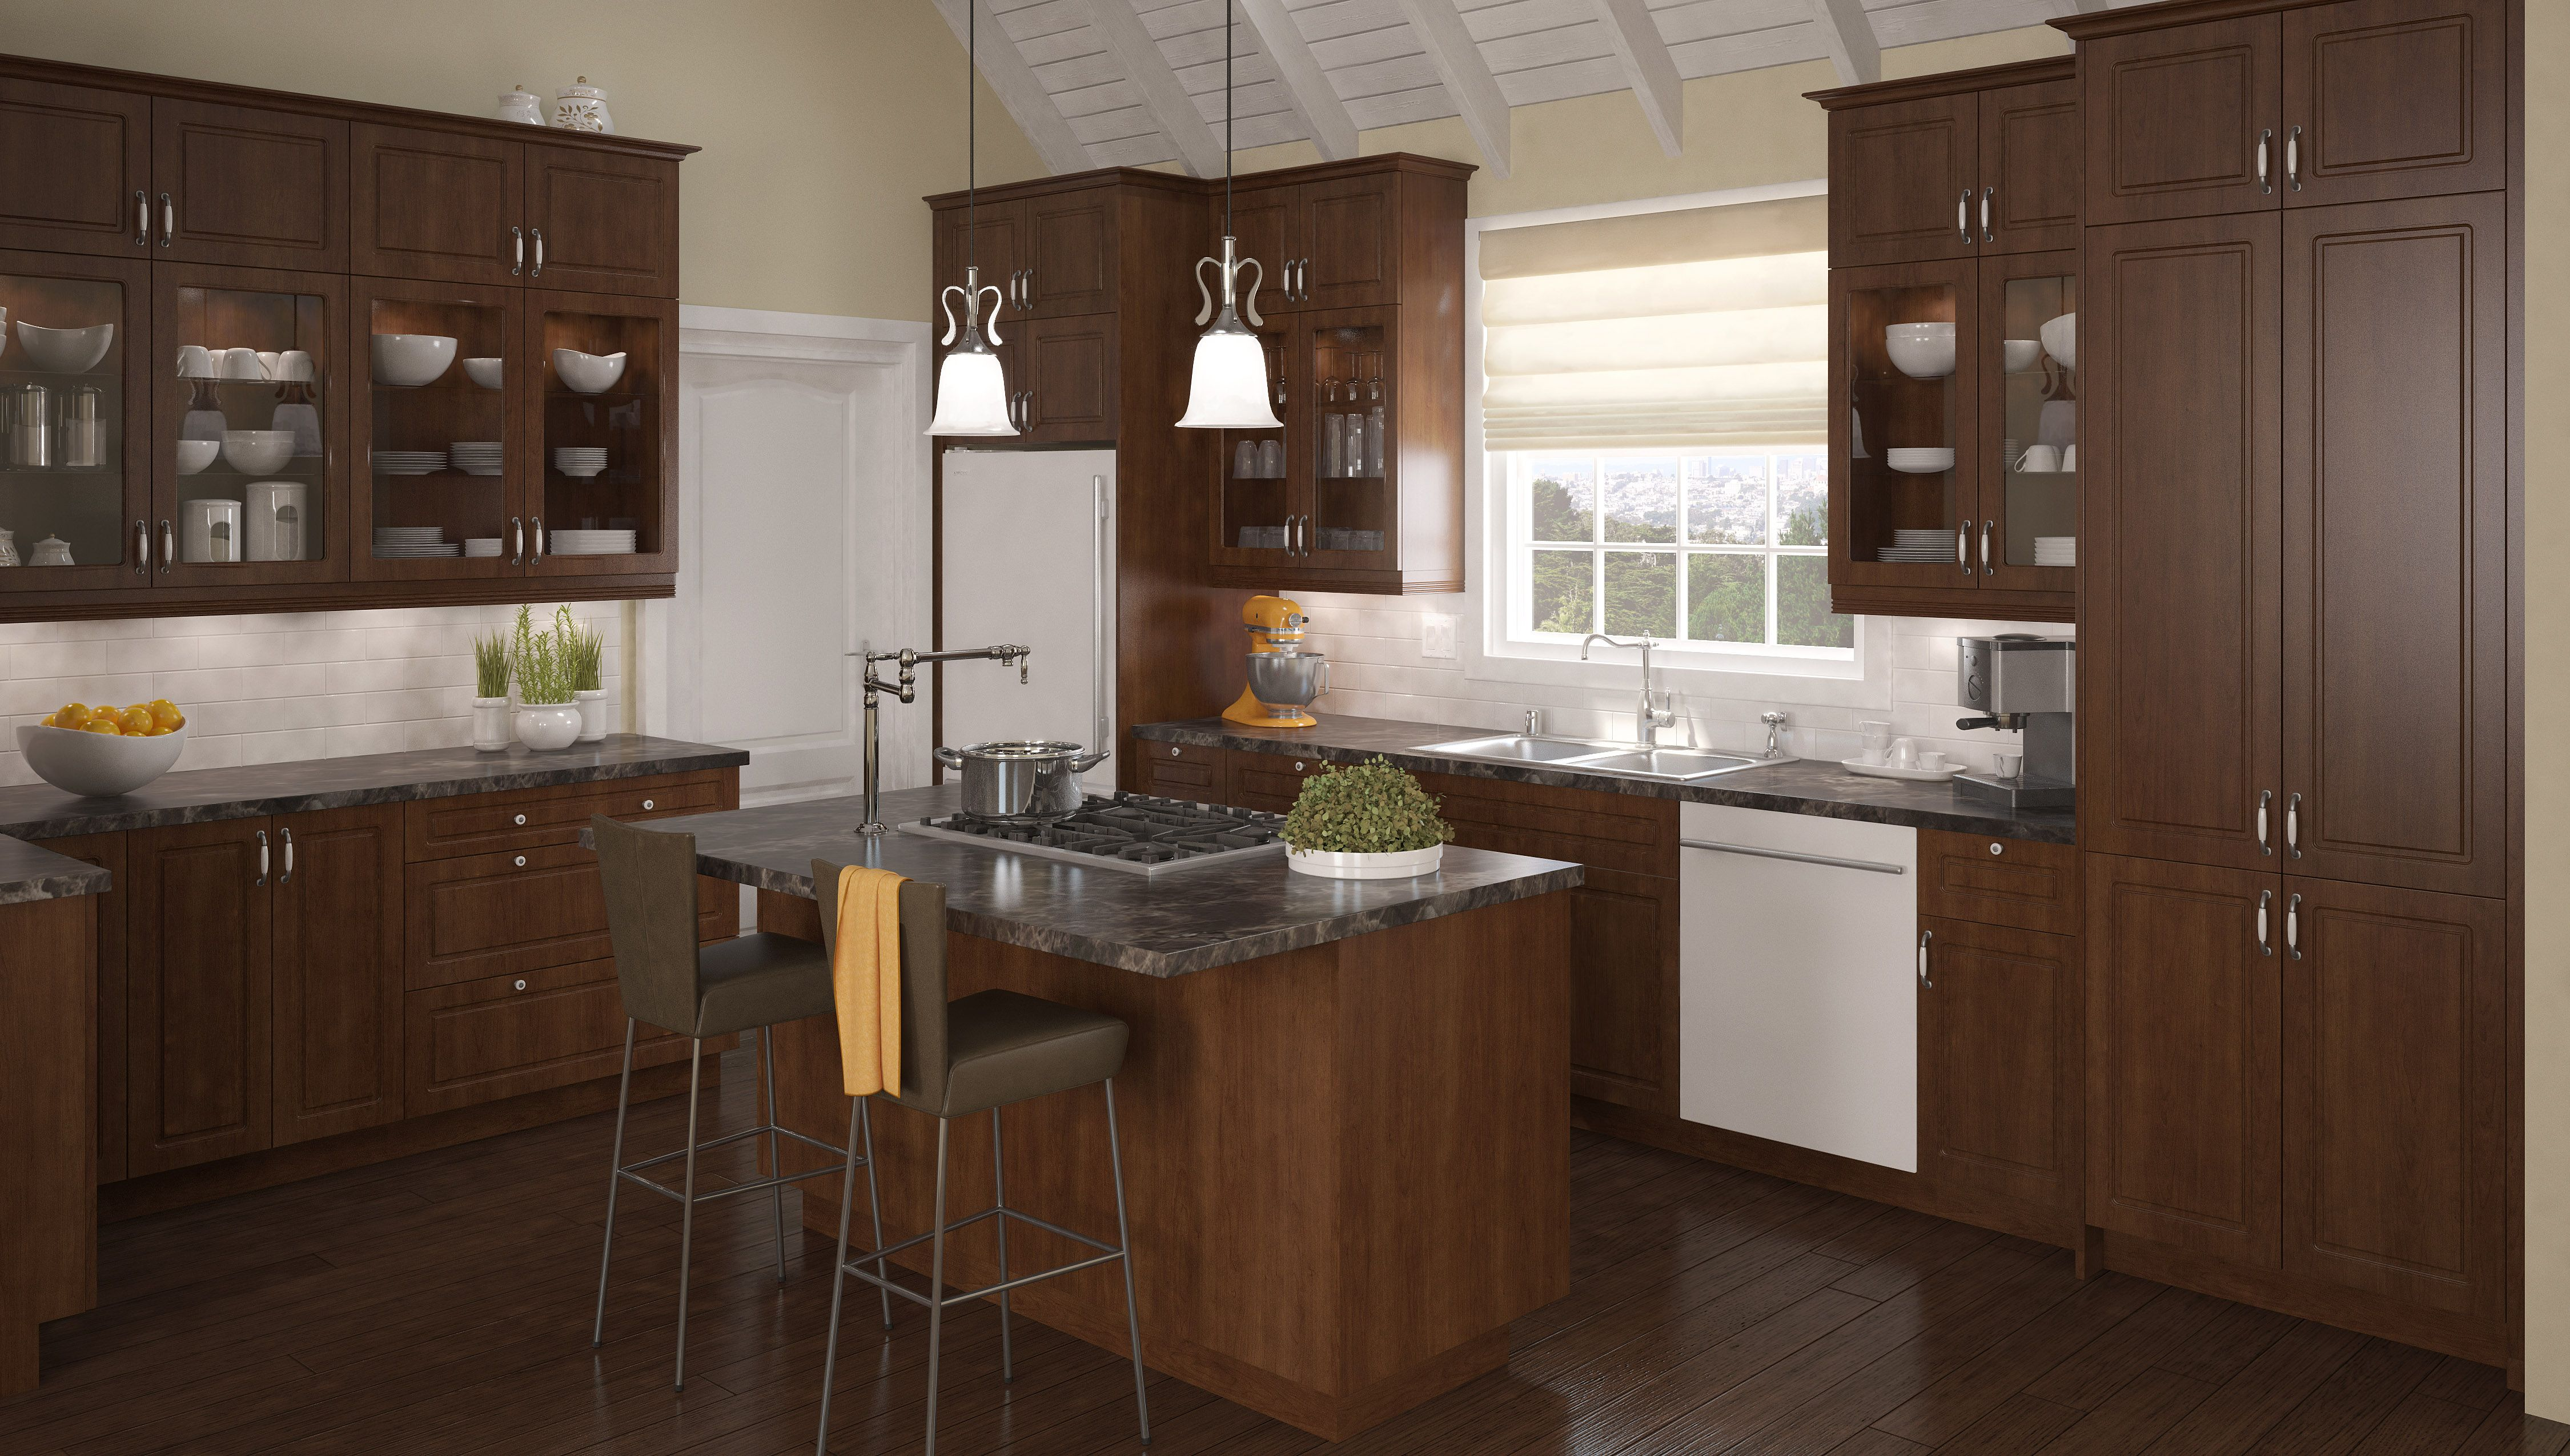 Transitional Kitchen from Fabritec Instant Fallidays